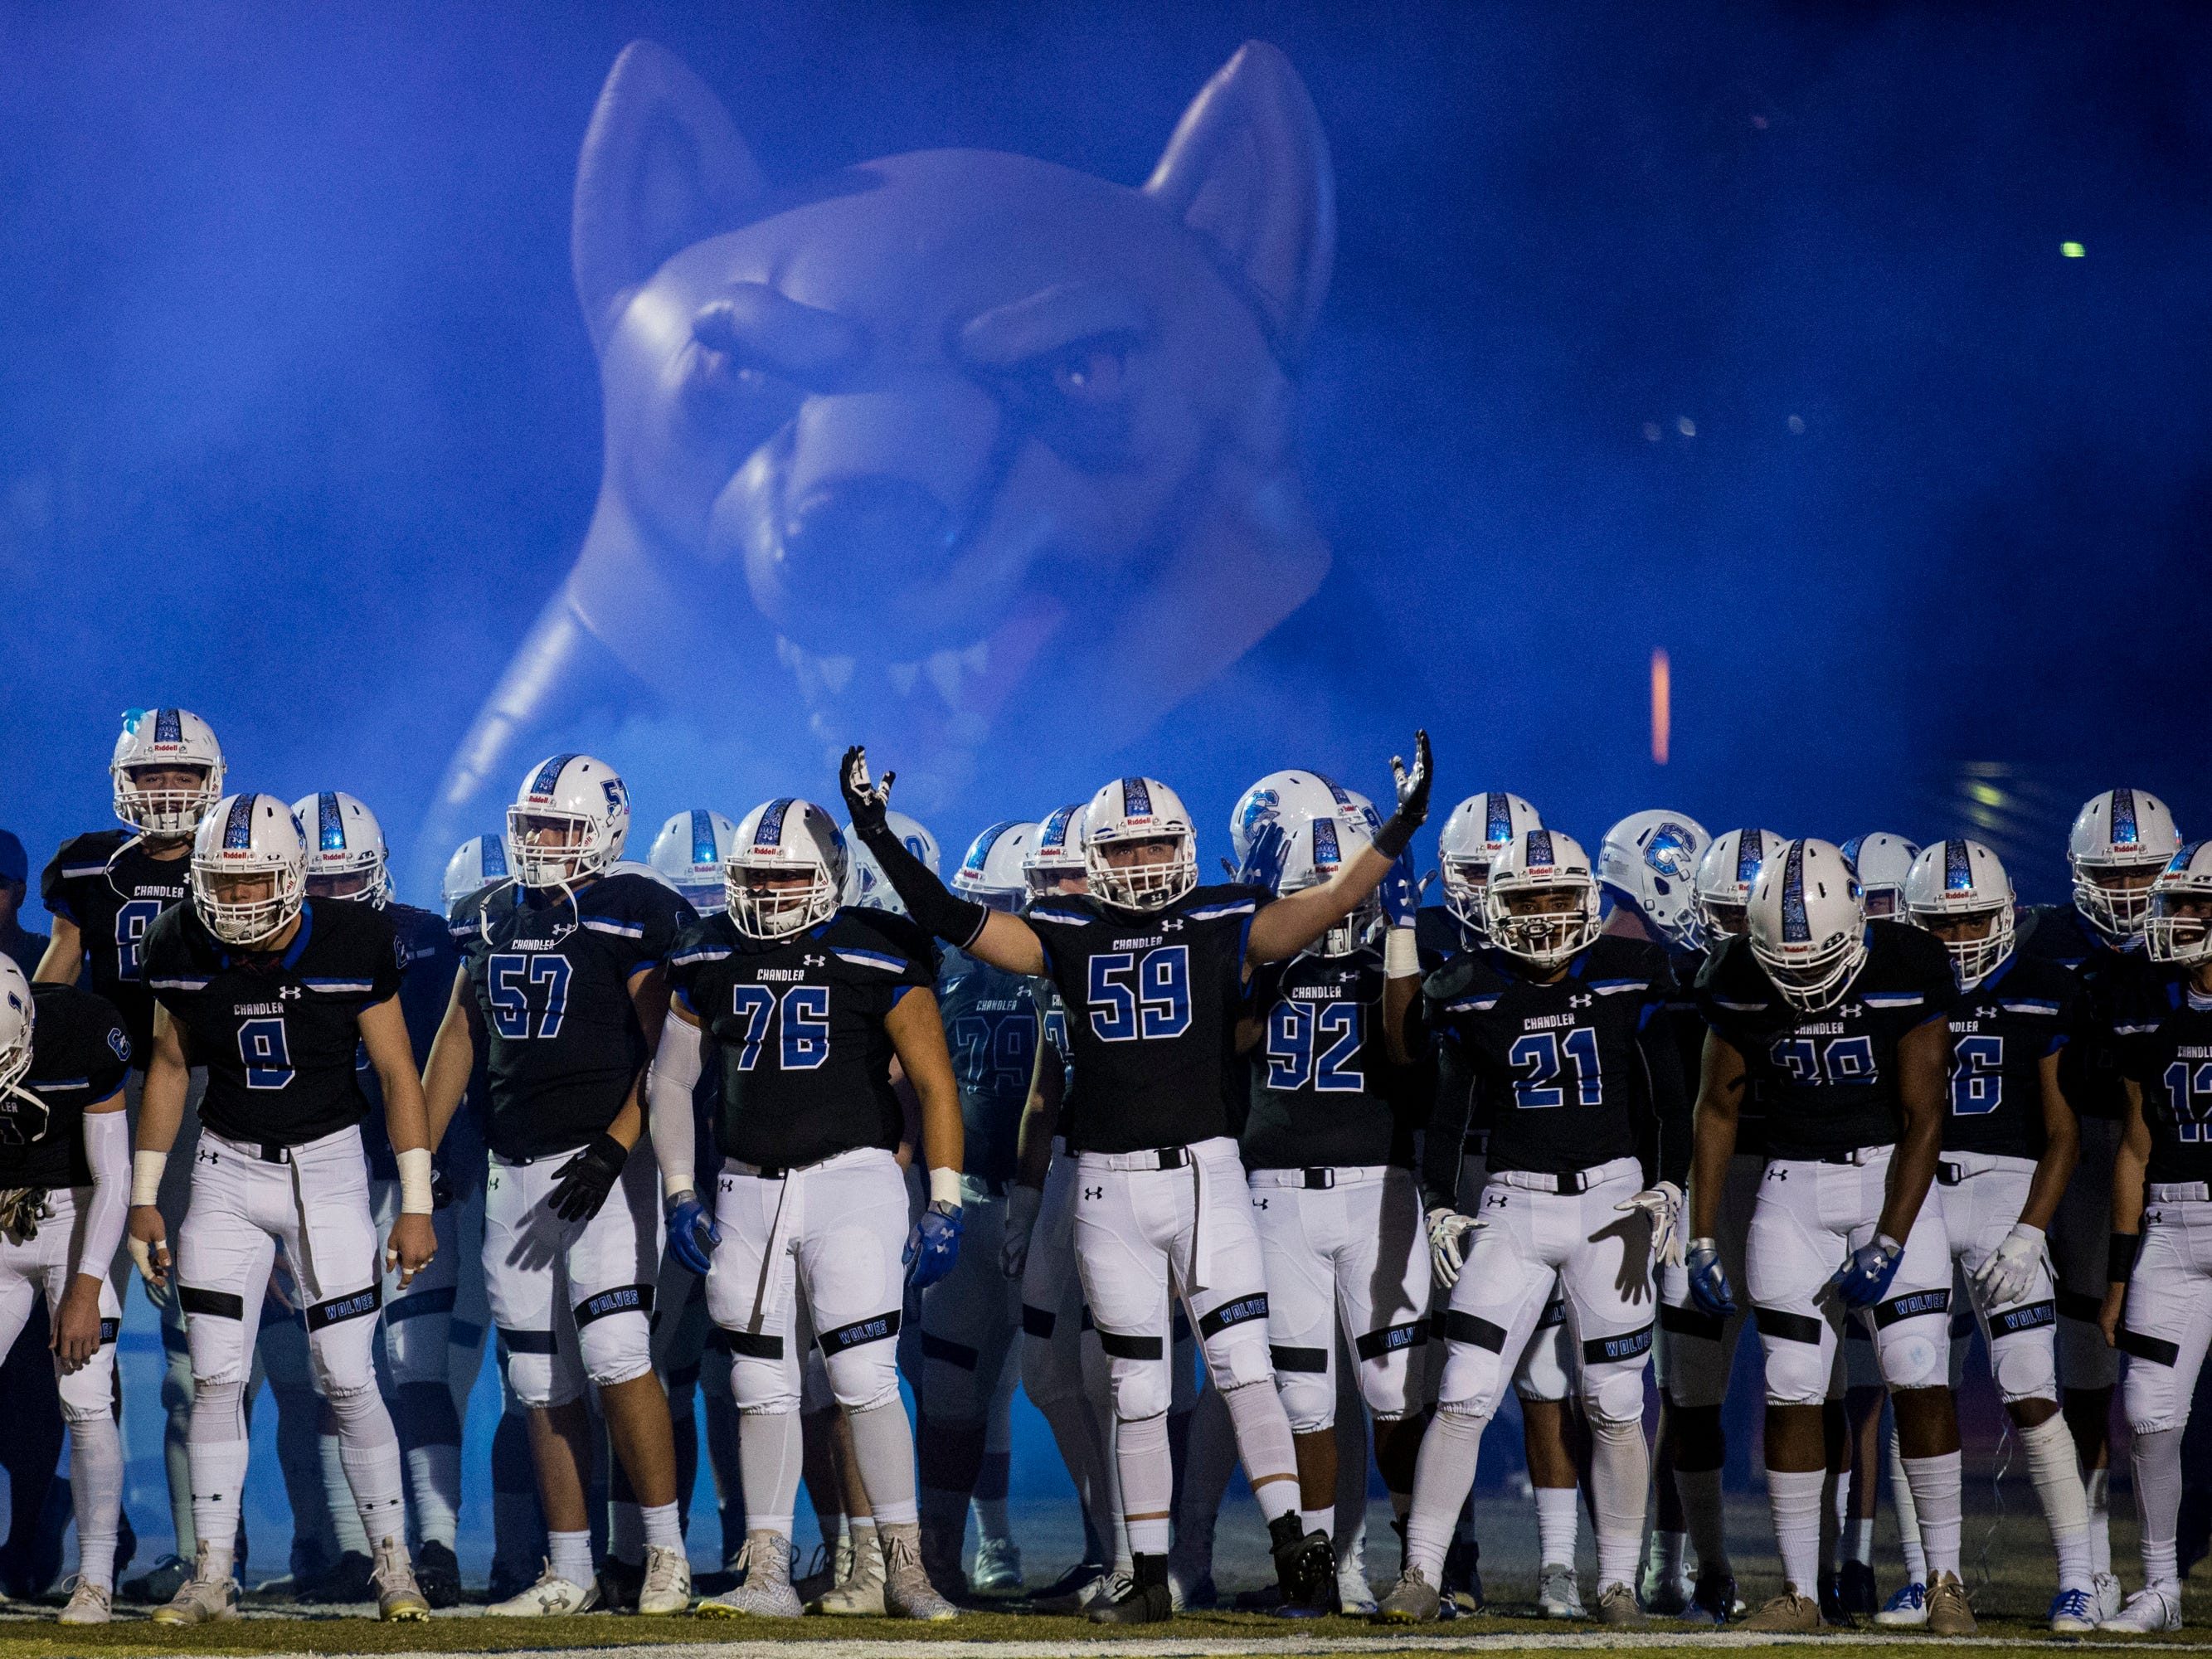 Chandler gets ready to take the field before the game against Mountain Pointe on Friday, Nov. 9, 2018, at Chandler High School in Chandler, Ariz.#azhsfb